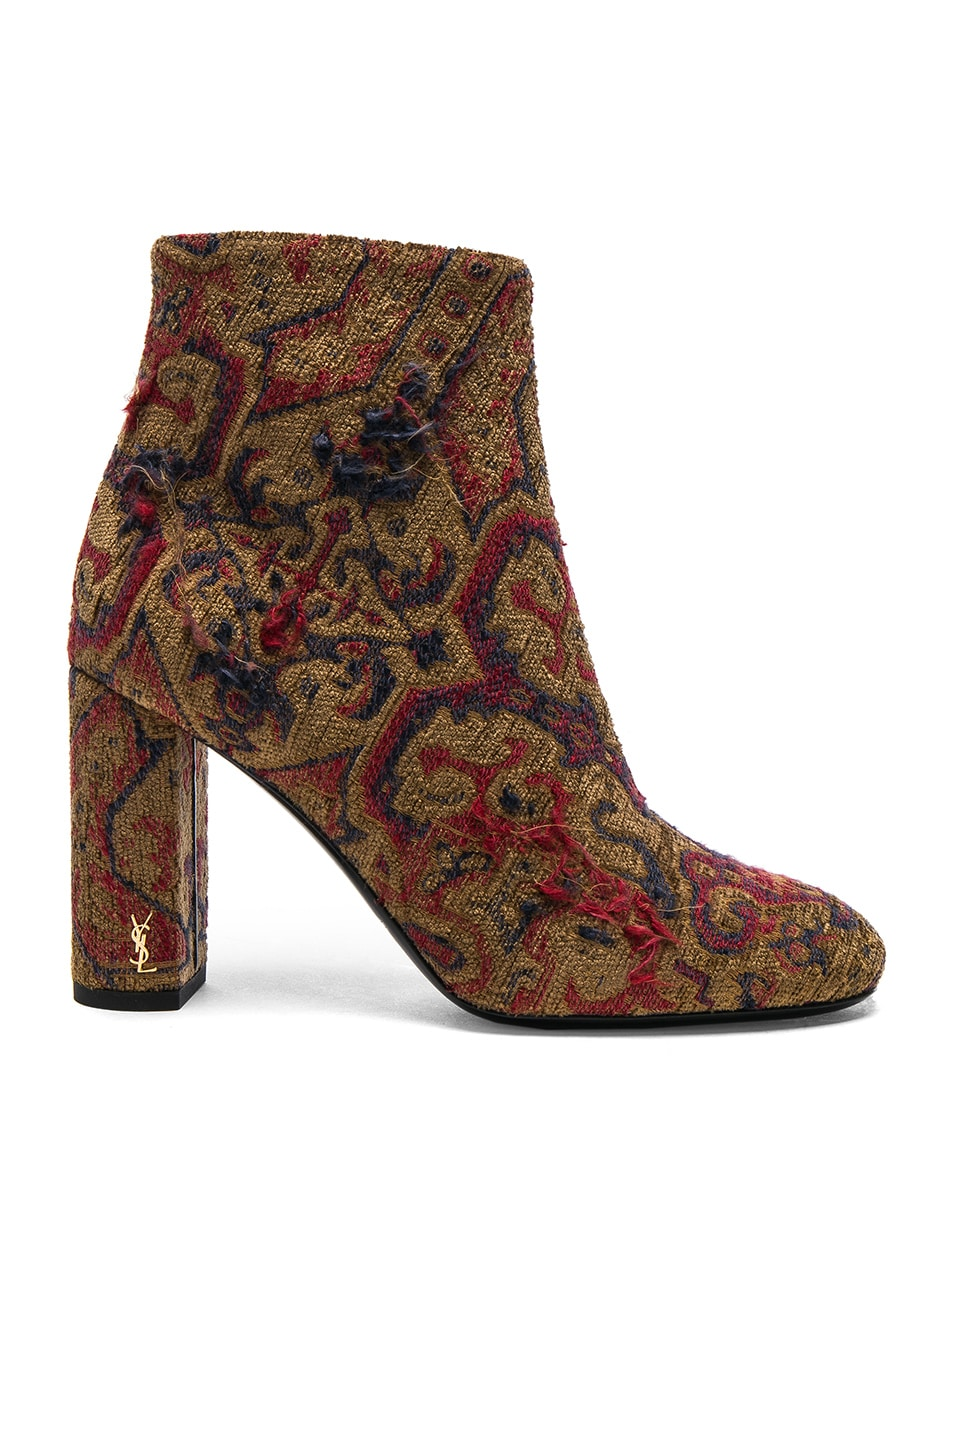 Image 1 of Saint Laurent Leather Loulou Boots in Saffron Red